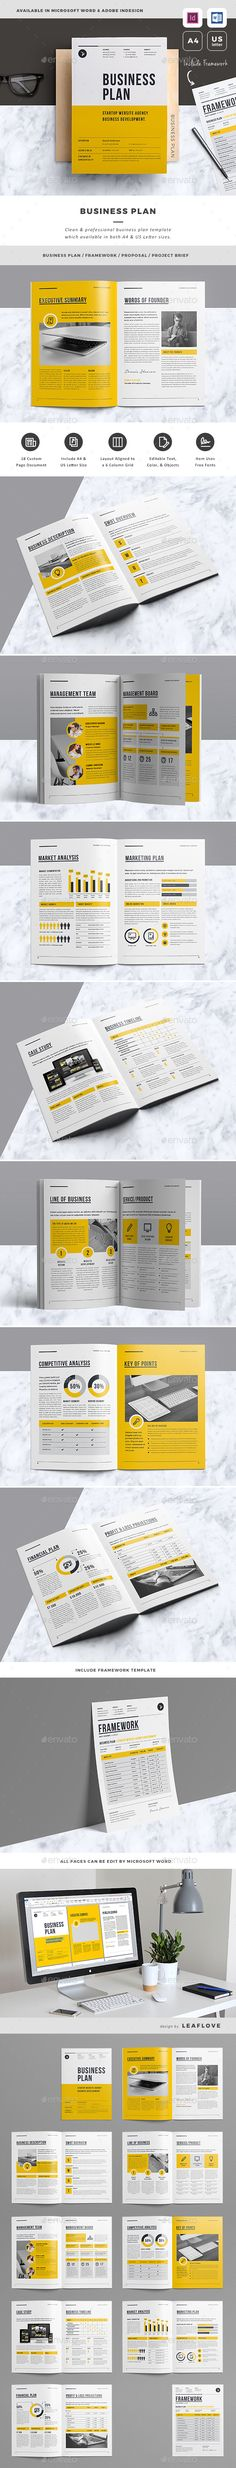 Business Plan Design Template - Proposals & Invoices Stationery Design Template InDesign INDD. Download here: https://graphicriver.net/item/business-plan/19353421?ref=yinkira